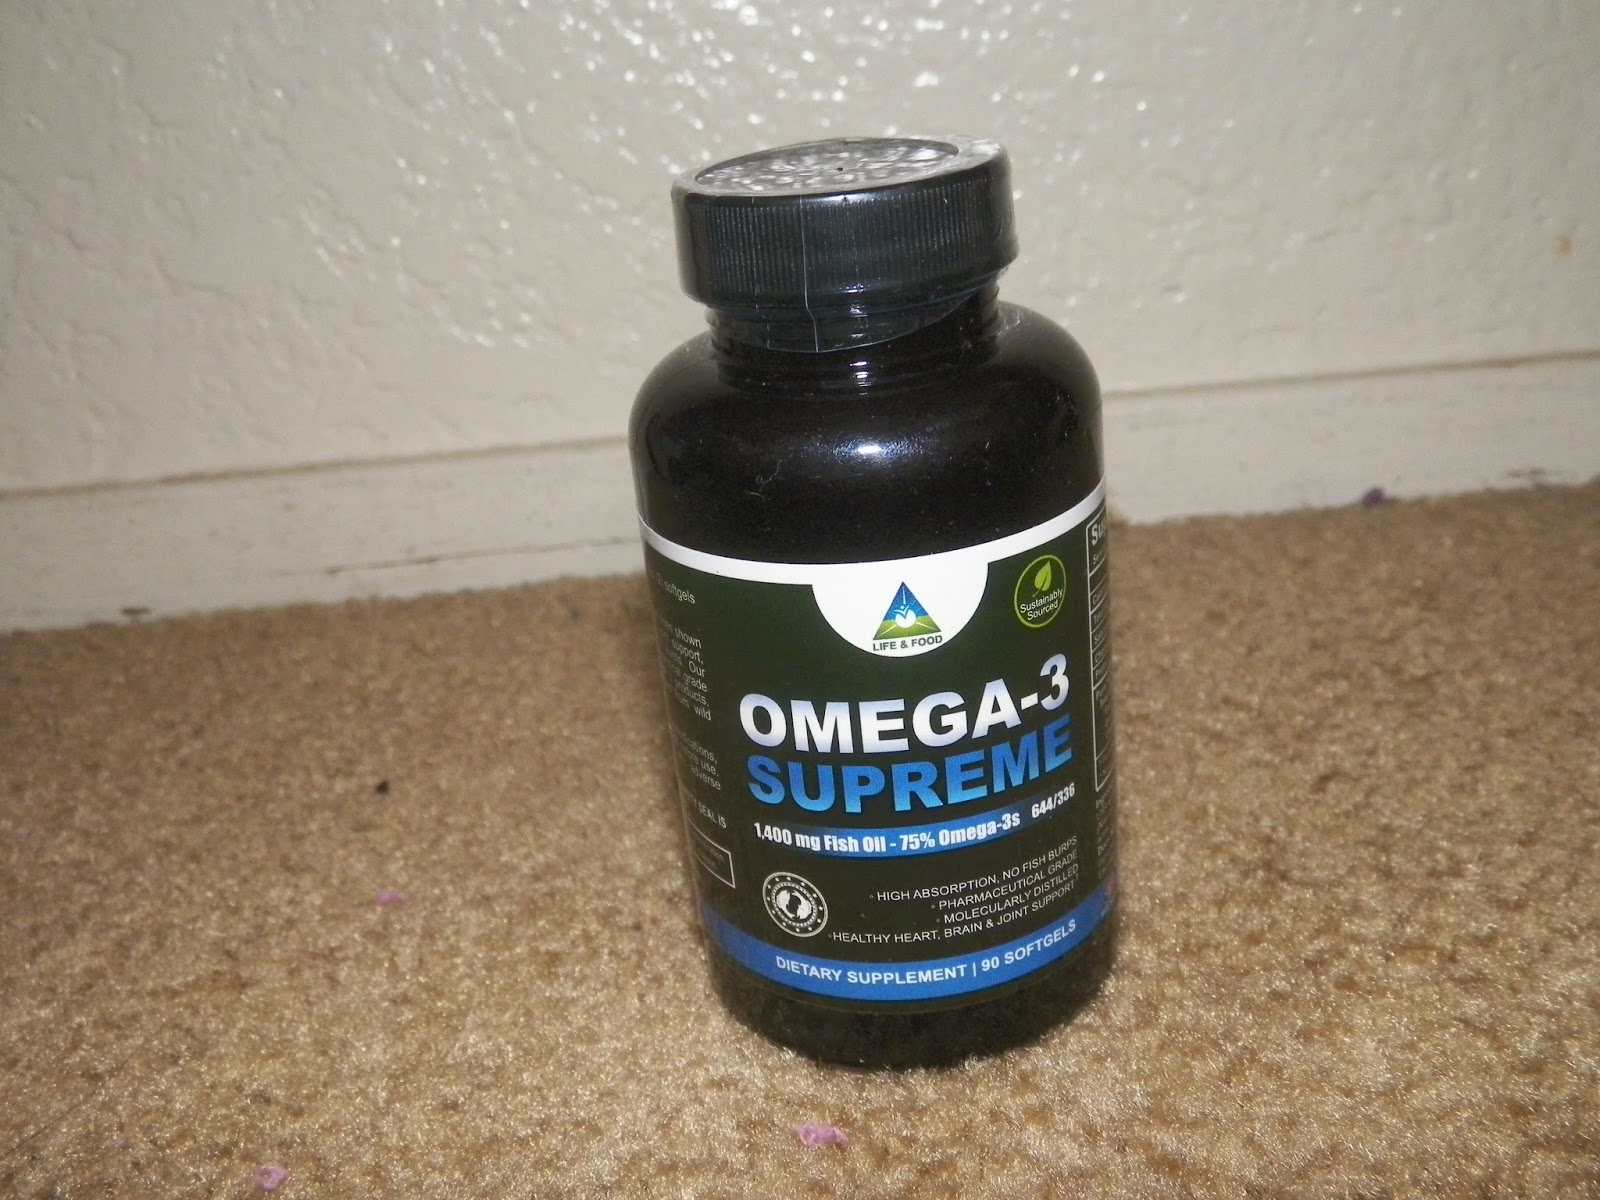 Mygreatfinds life food omega 3 supreme supplement review for Fish oil for cooking